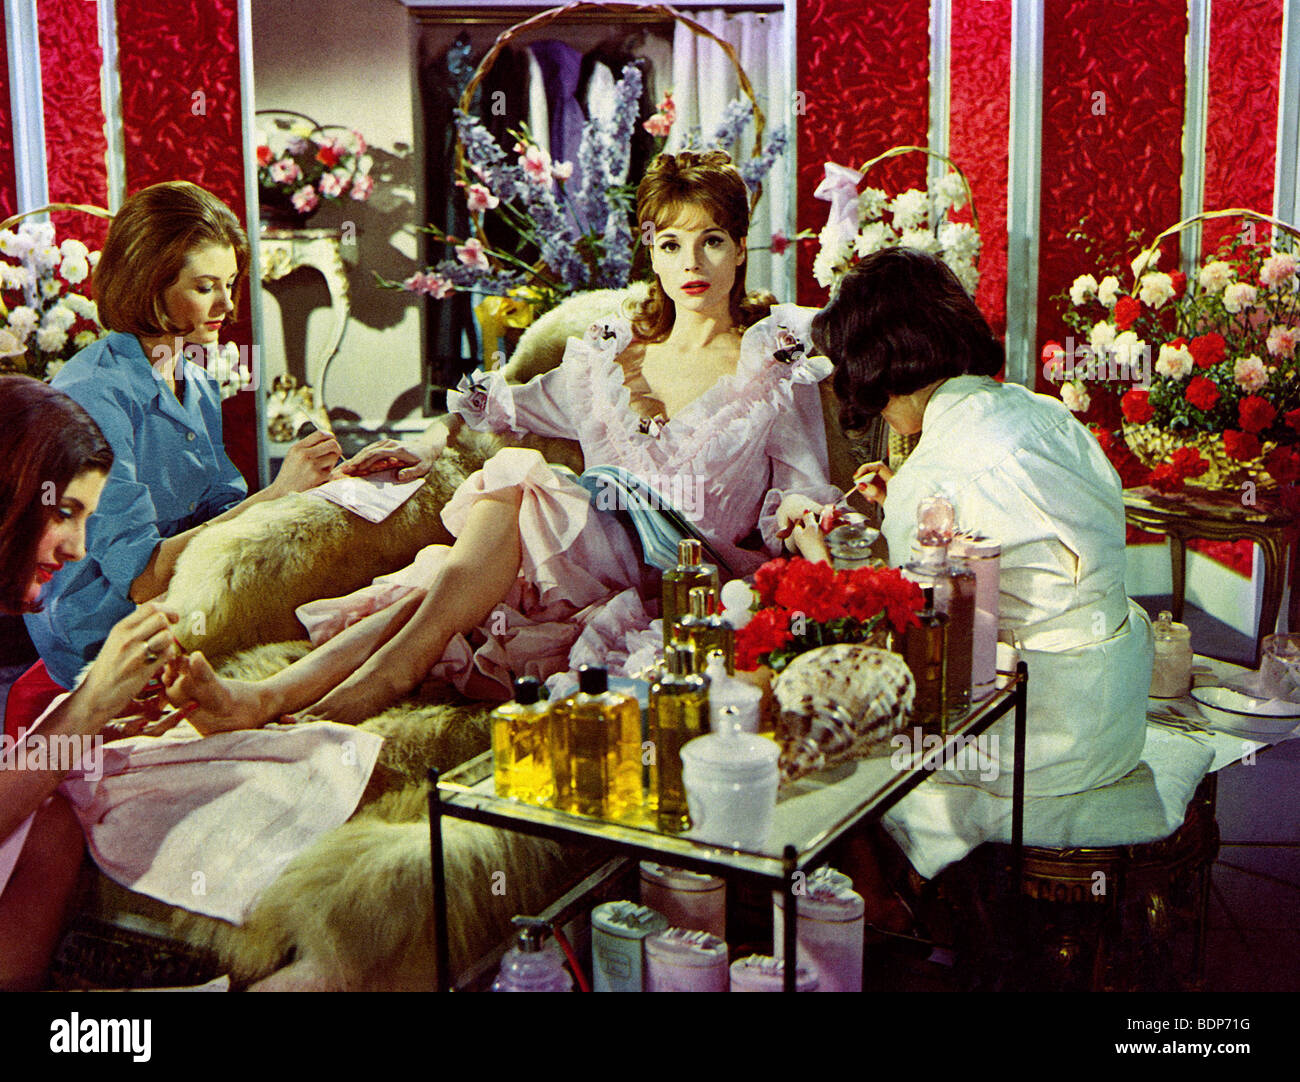 THE VIPS - 1963 MGM film with Elsa Martinelli - Stock Image